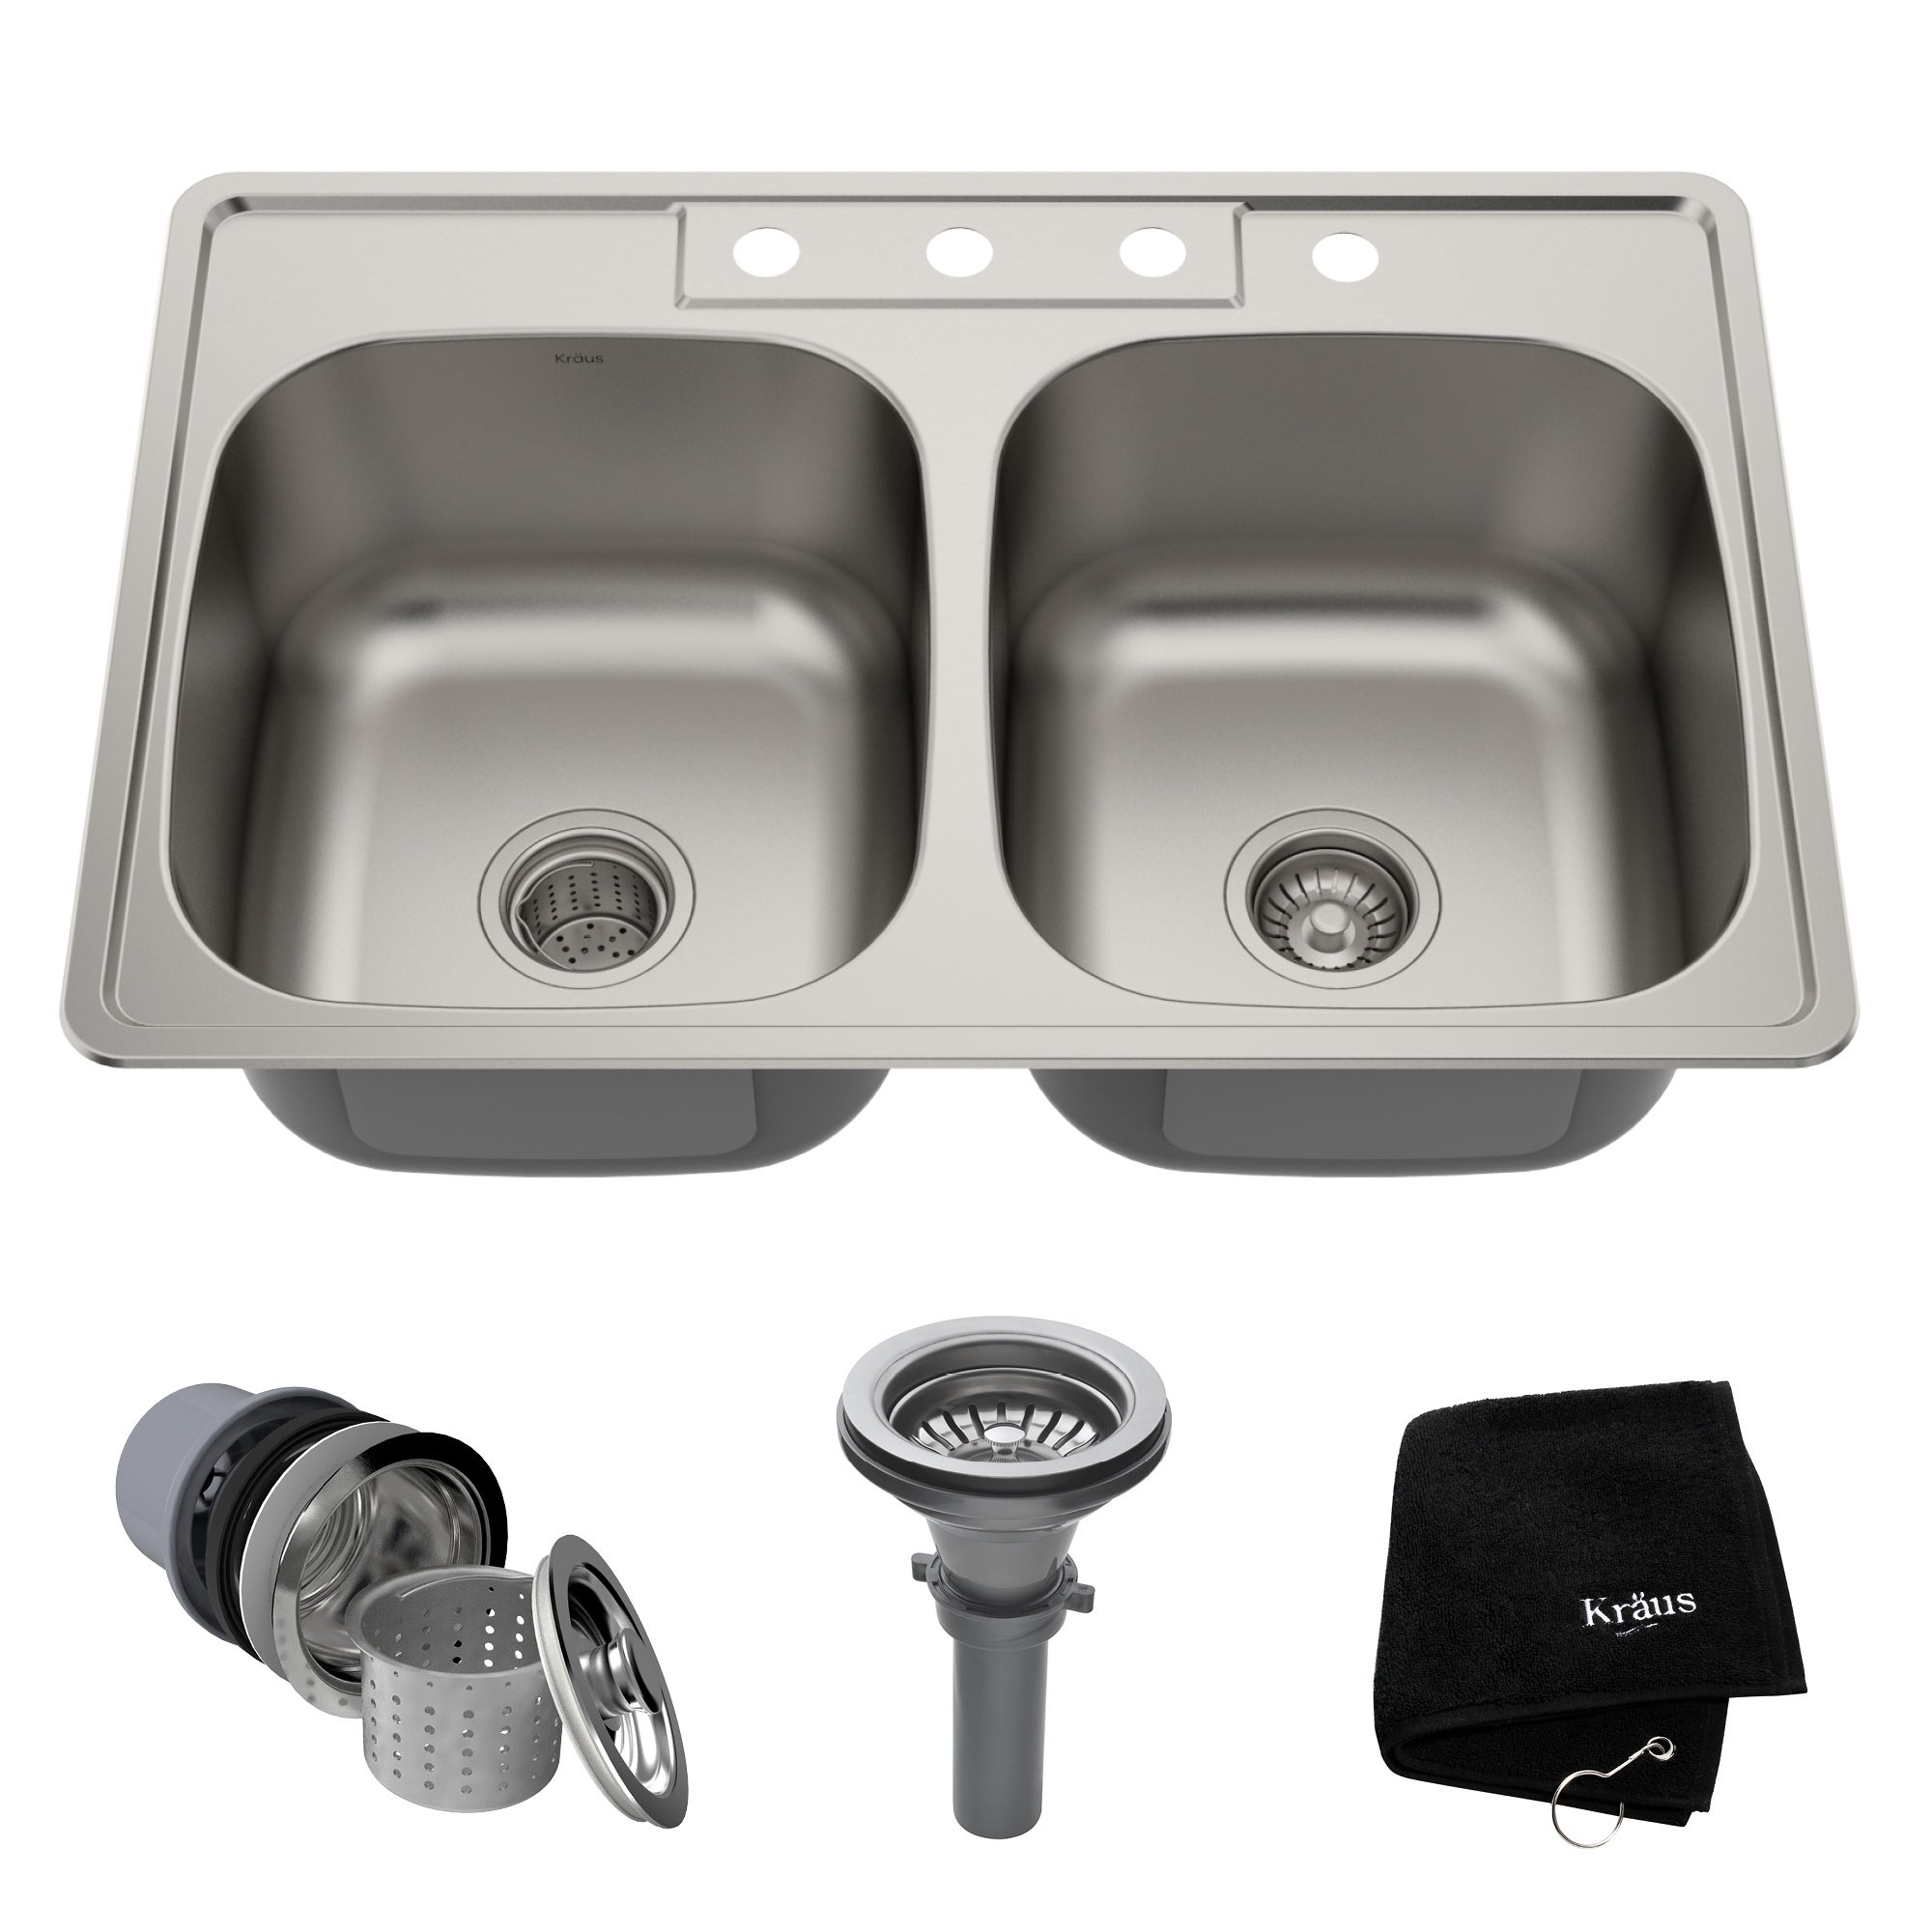 Kraus Ktm33 Drop In 33 18g 50 2 Bowl Stainless Steel Kitchen Sink Noisedefend Soundproofing Strainers Towel